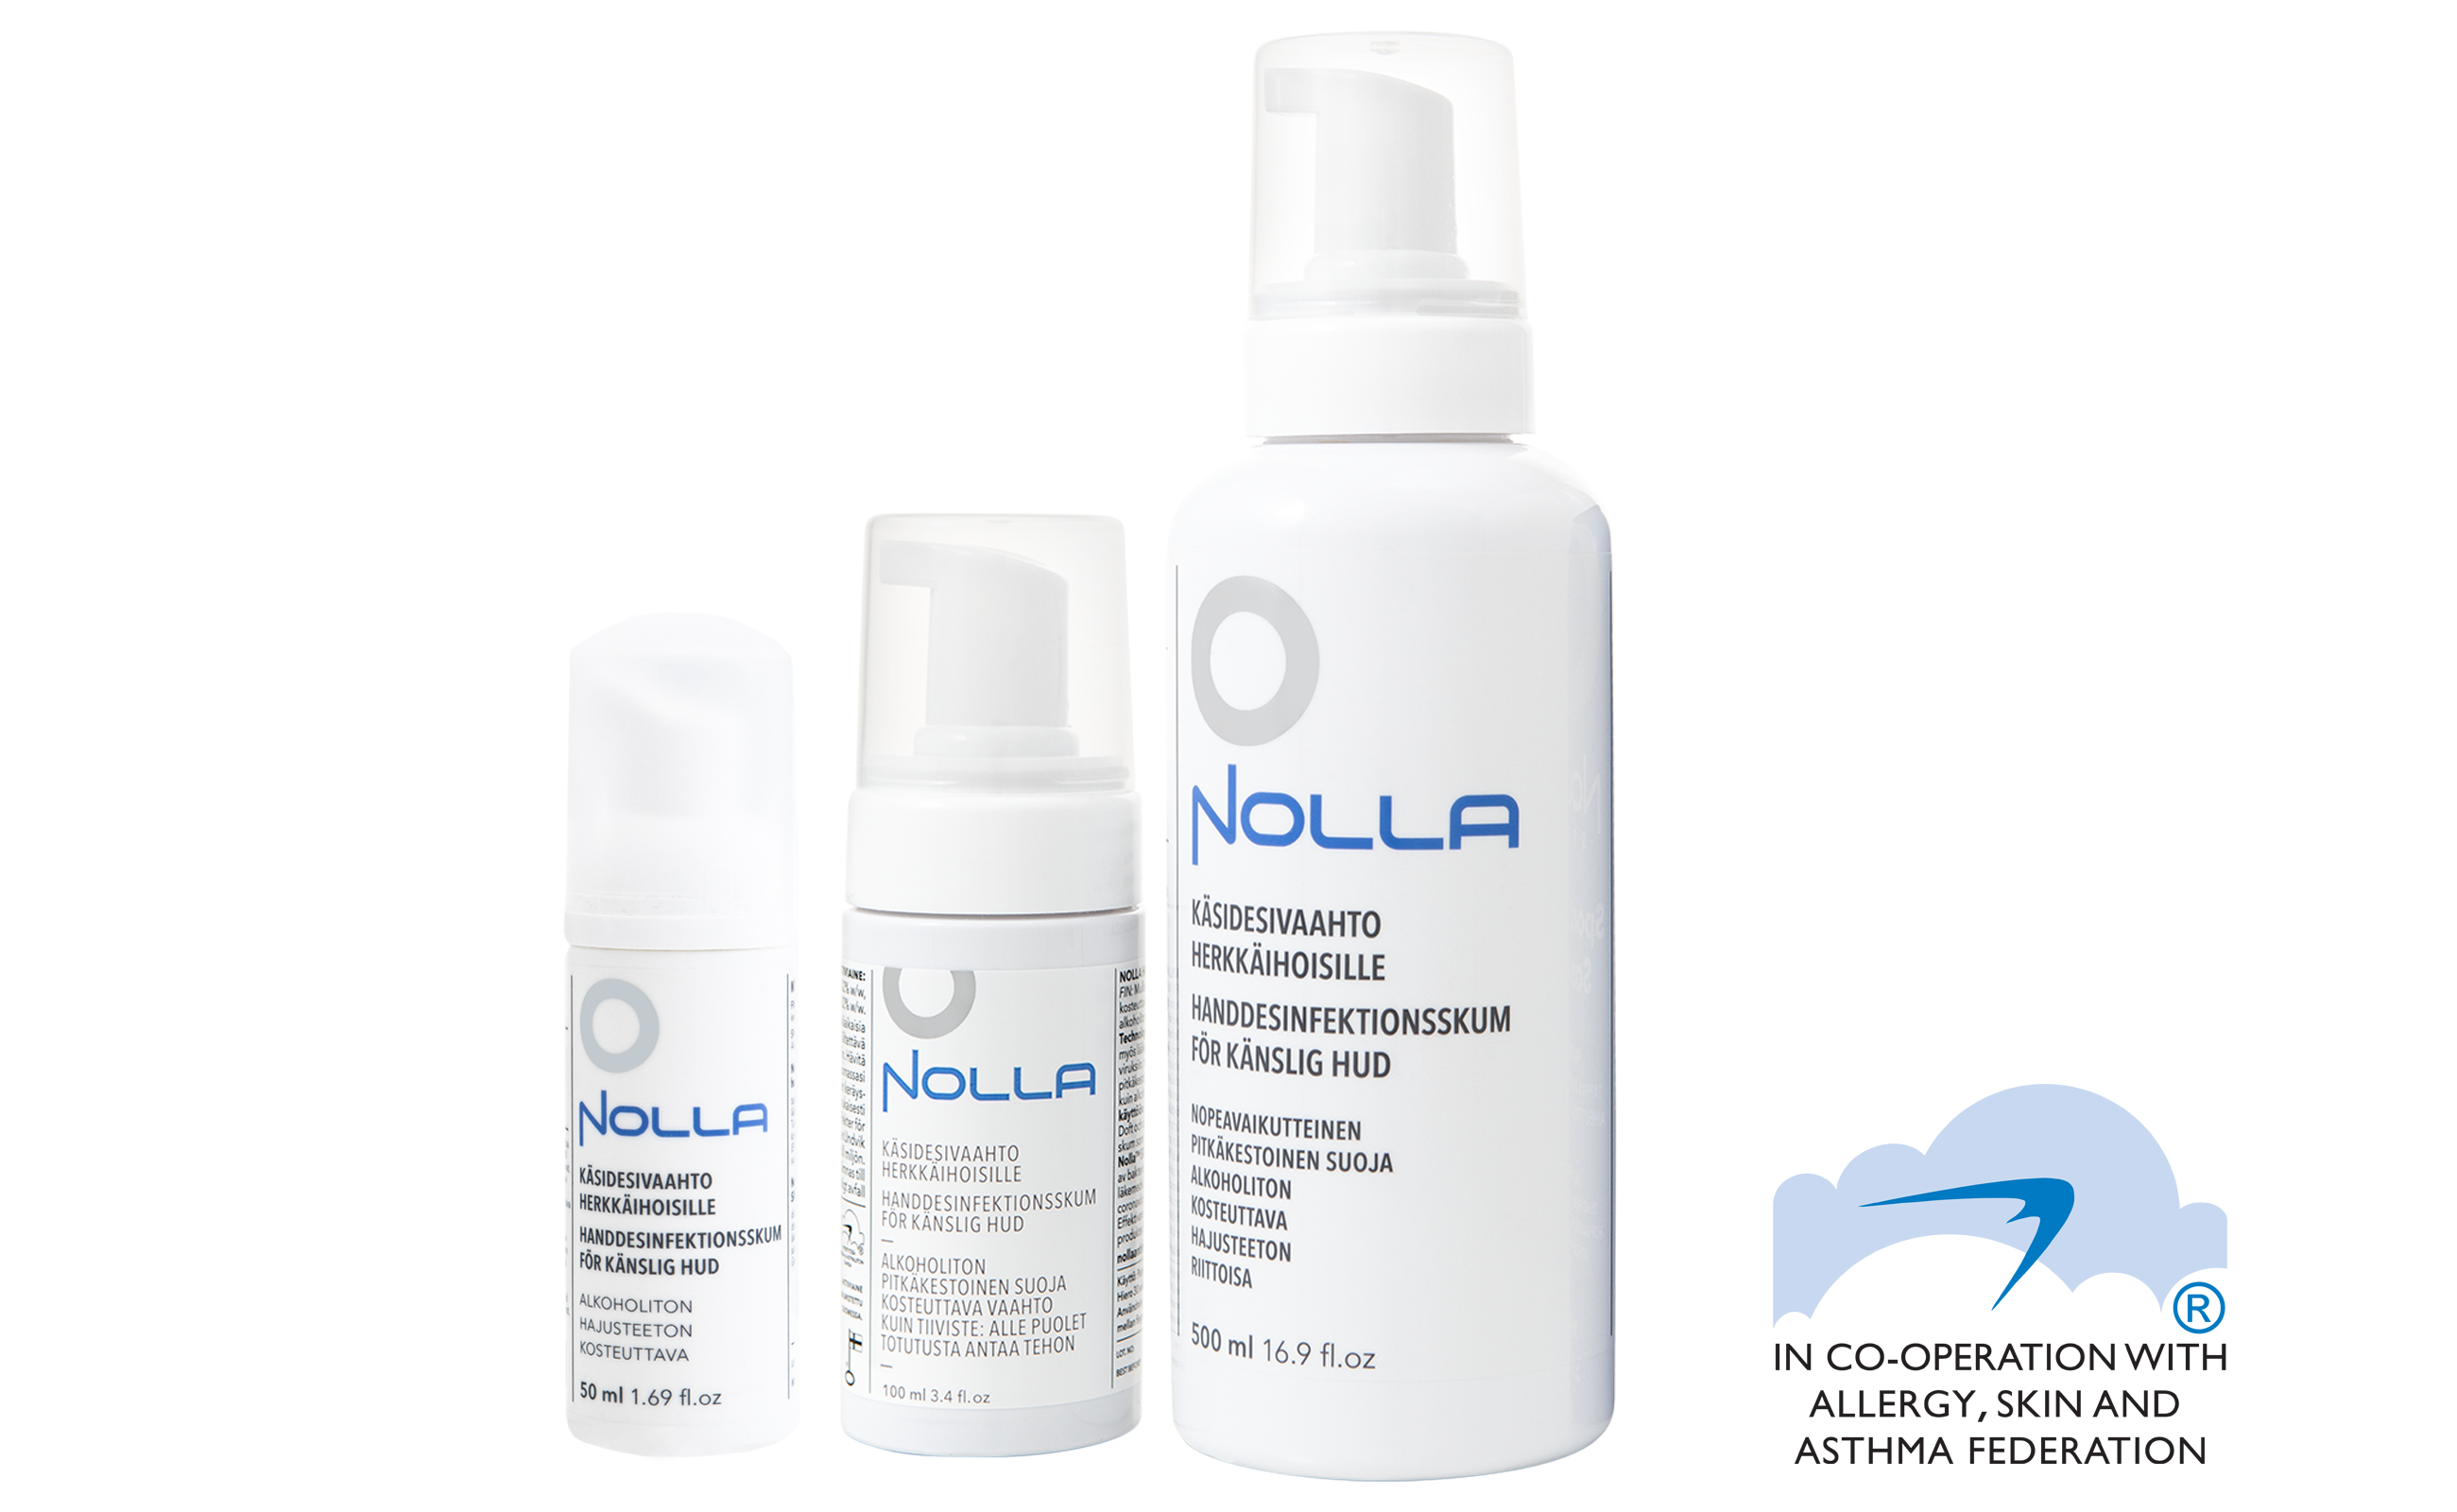 Nolla Antimicrobial Hand Sanitizer foam and Allergy, Skin and Asthma Federation